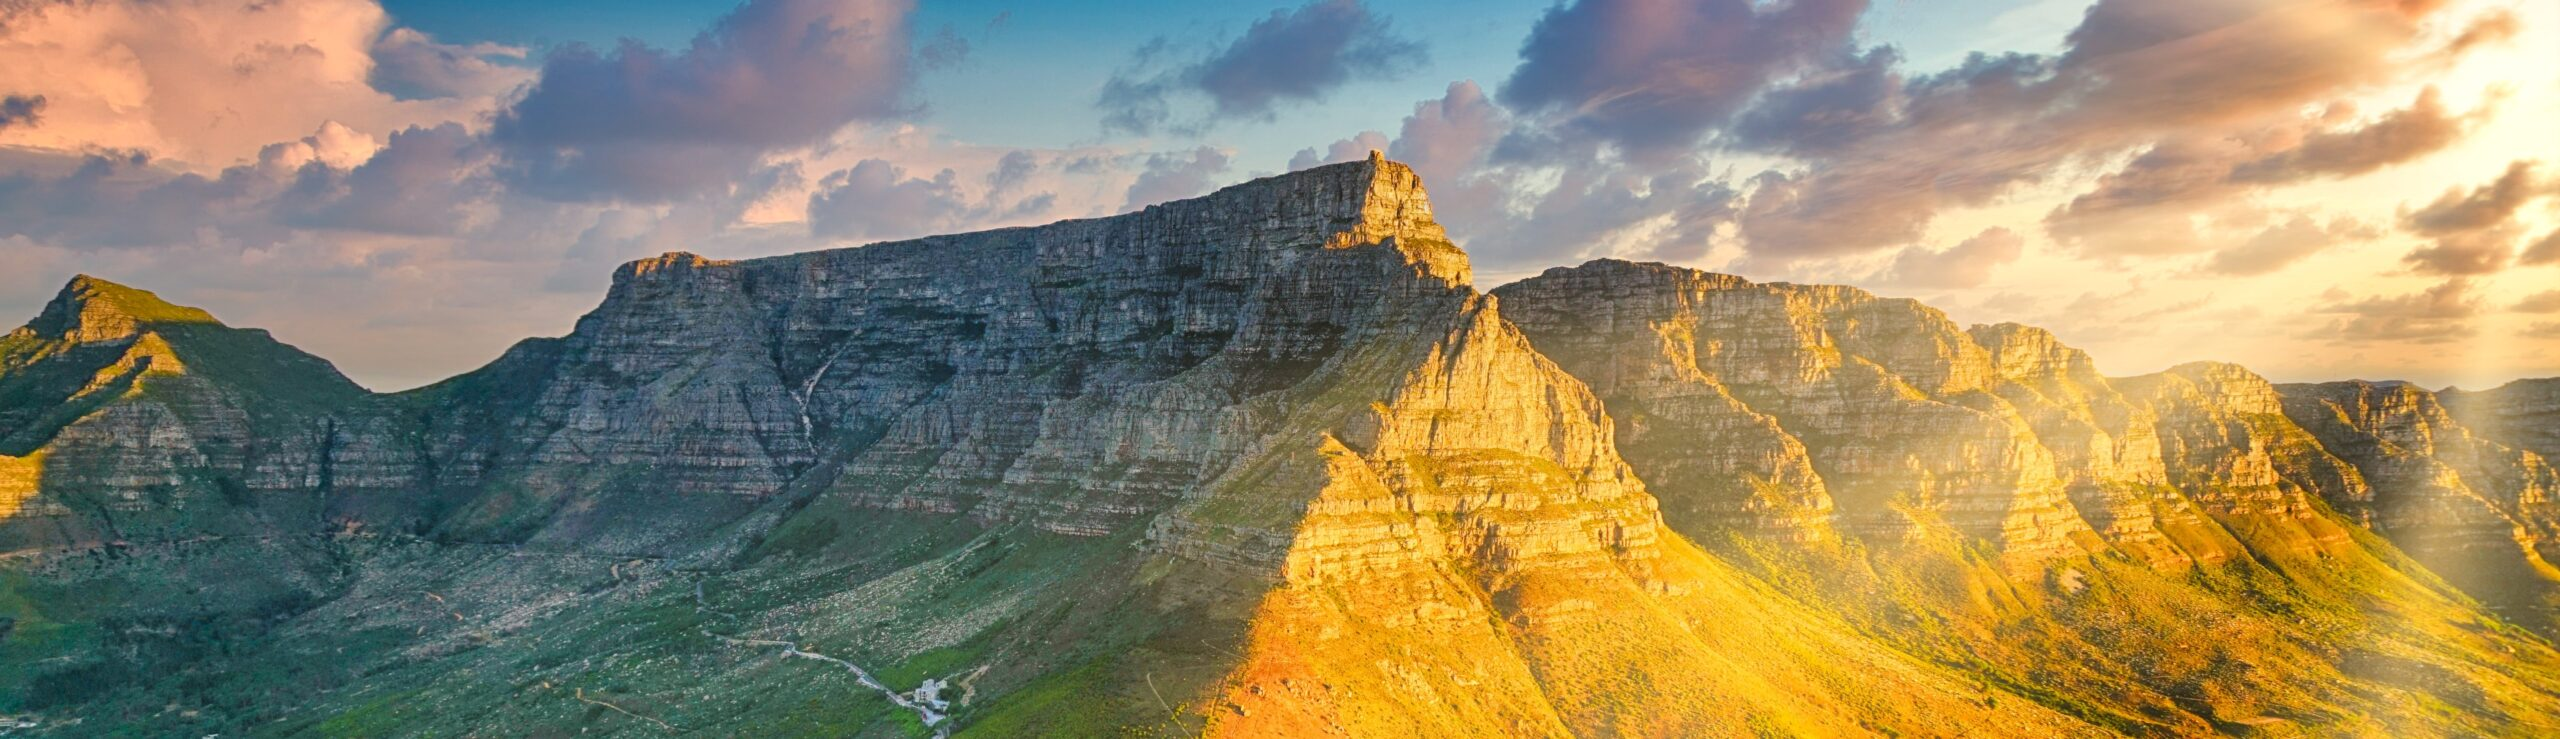 South Africa's new associated enterprise rules